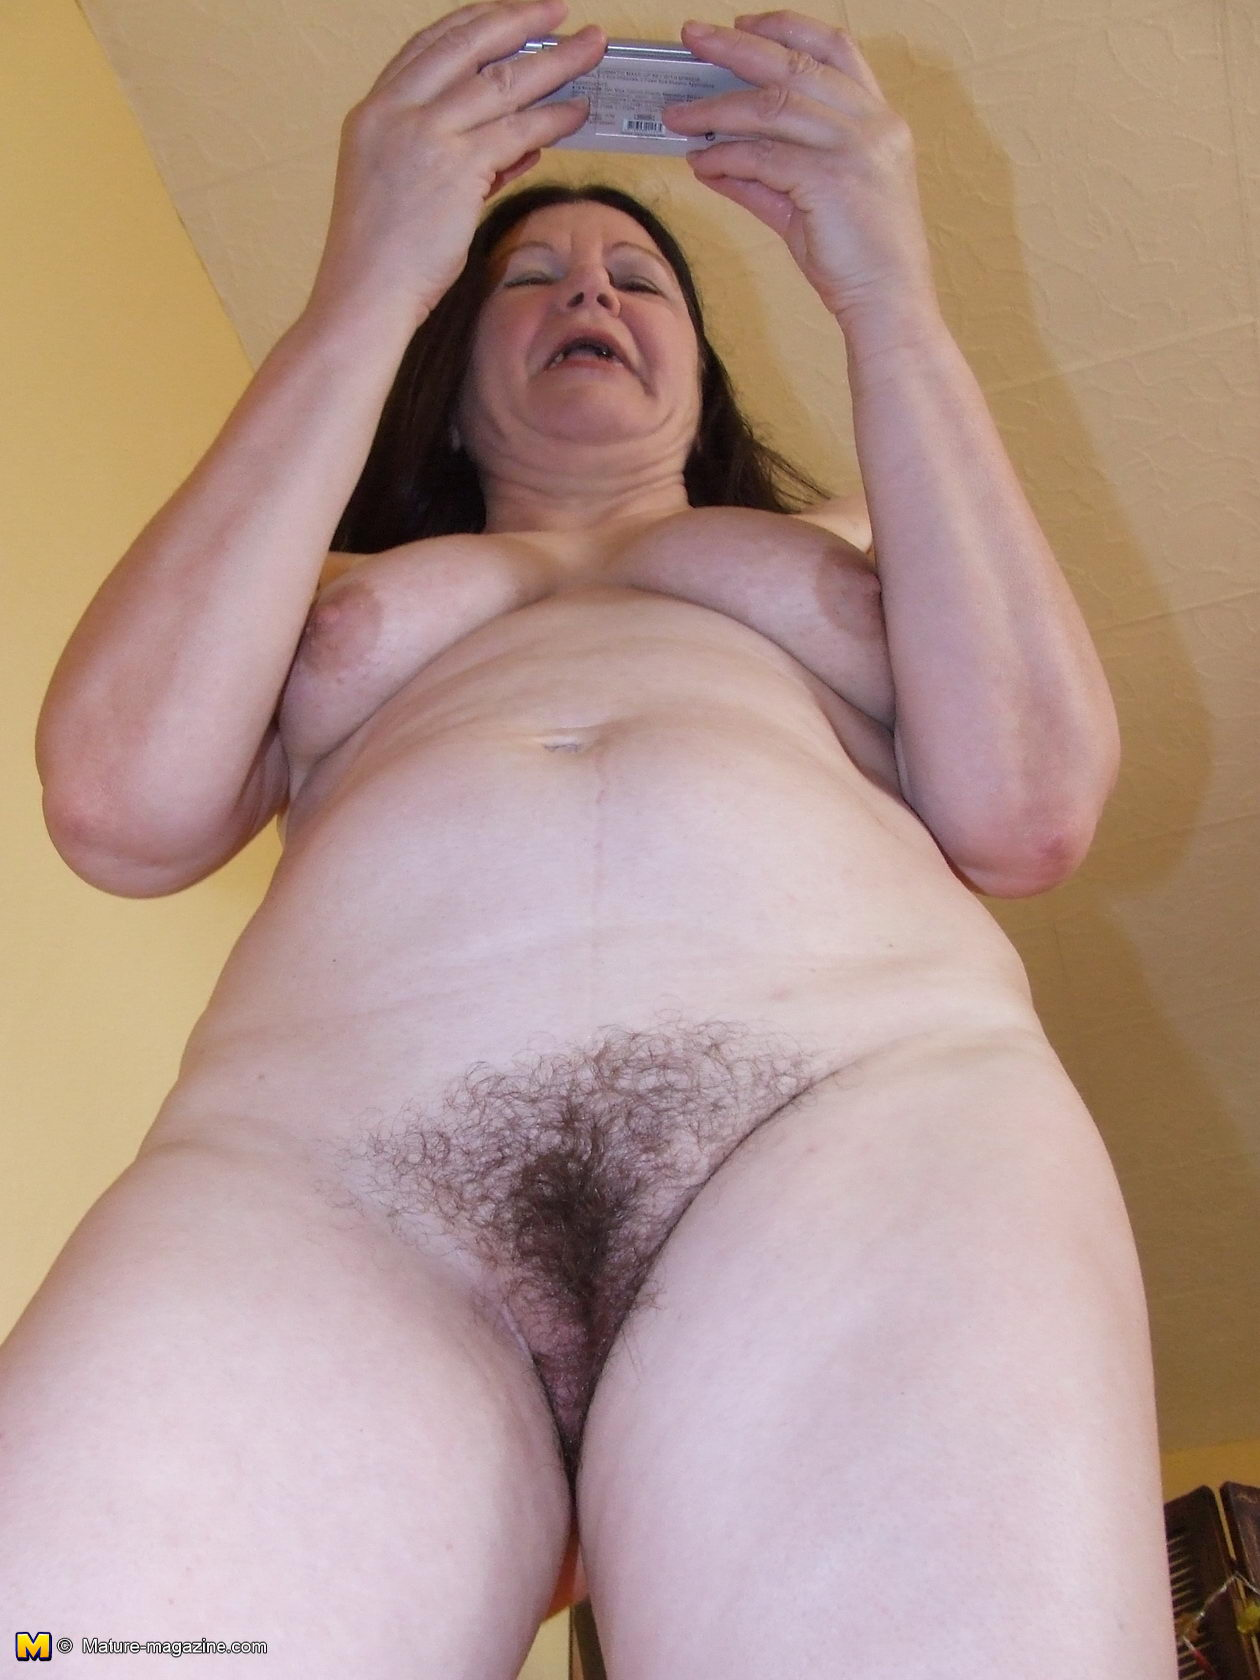 Hairy grandma nude very